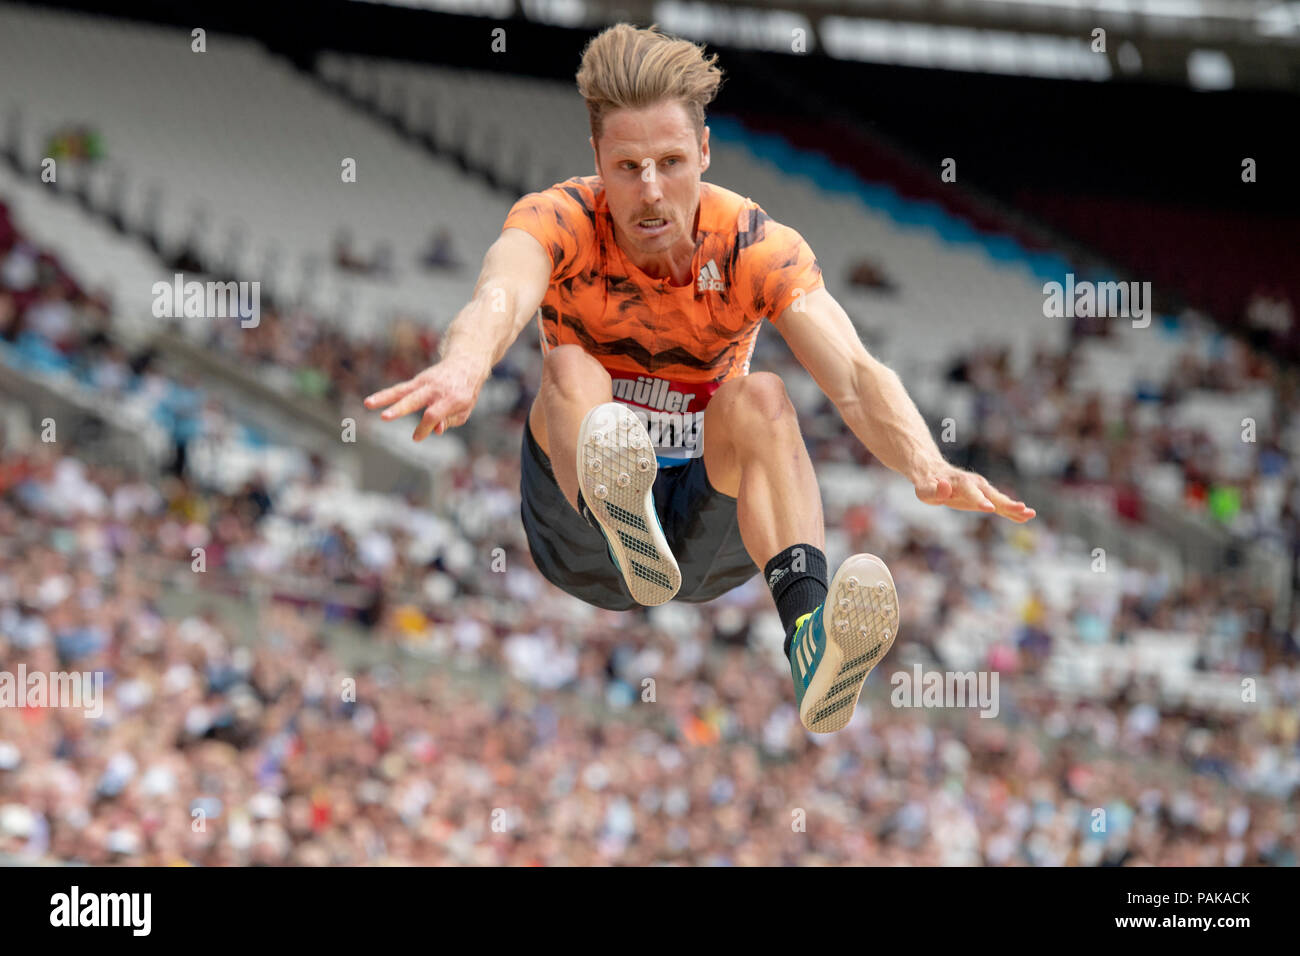 London, UK. 22nd July 2018. Henry Frayne (AUS) Muller Anniversary Games at the London Stadium, London, Great Britiain, on 22 July 2018. Credit: Andrew Peat/Alamy Live News - Stock Image